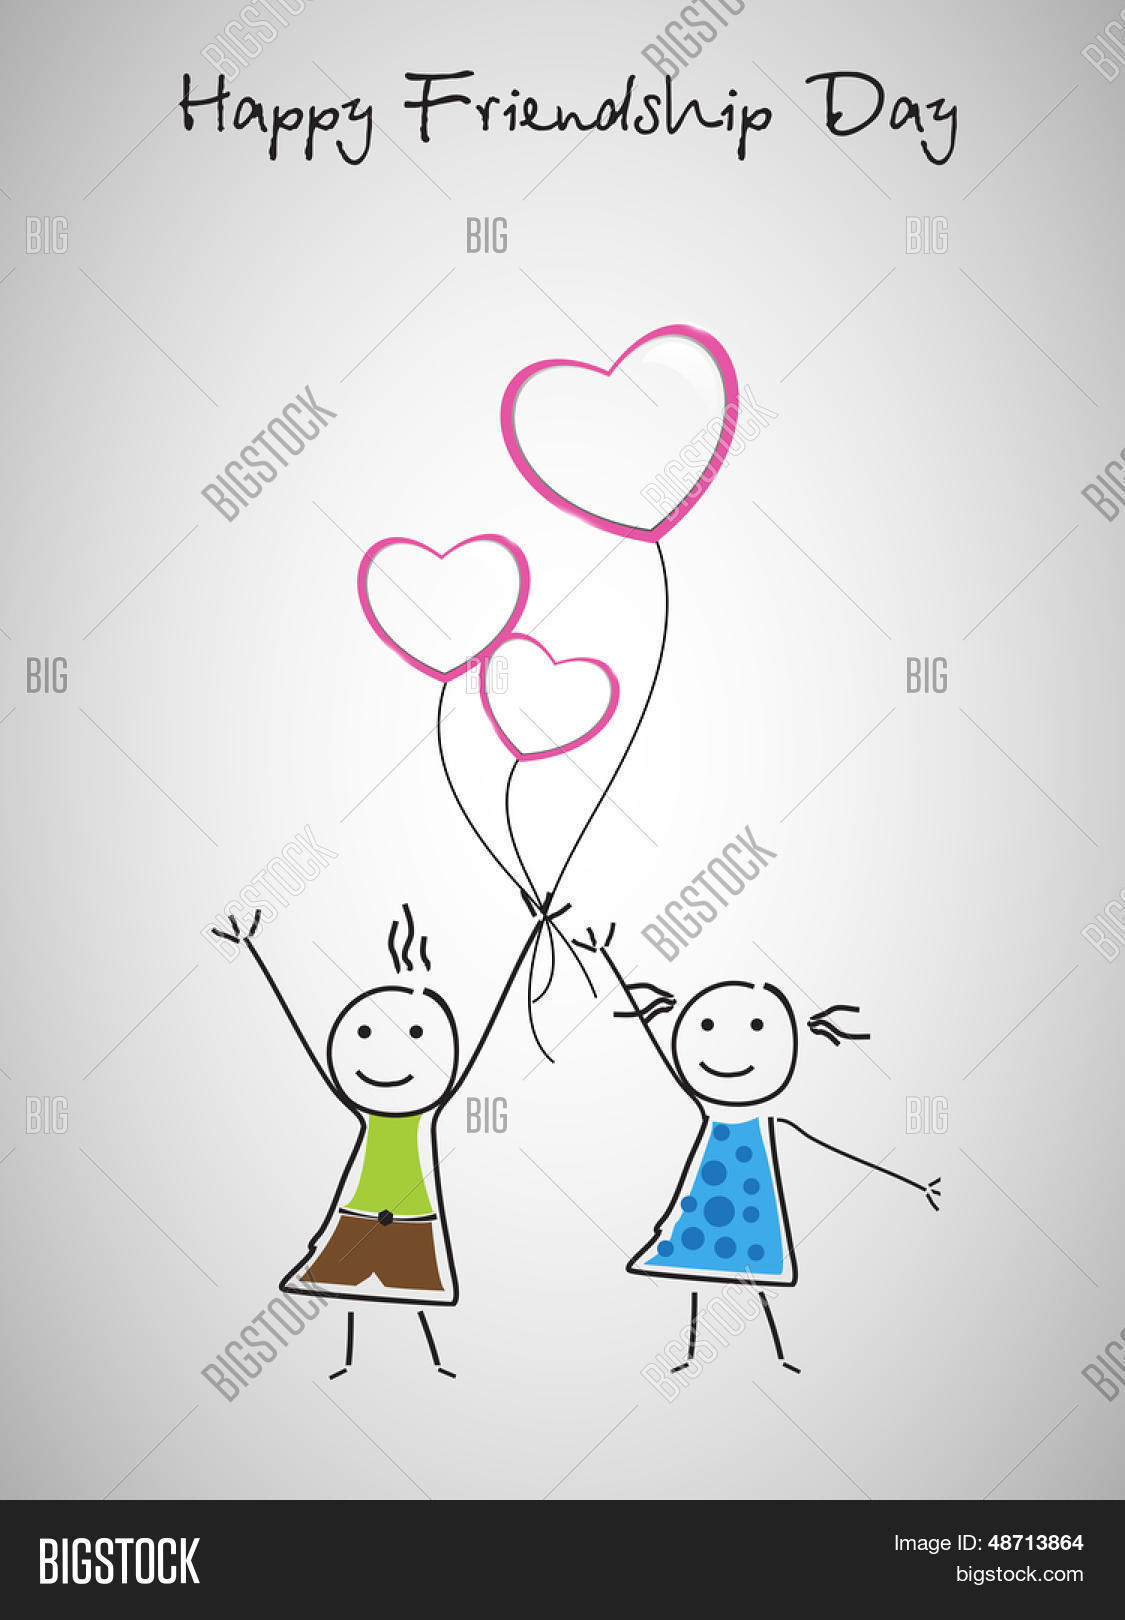 Happy Friendship Day Vector Photo Free Trial Bigstock